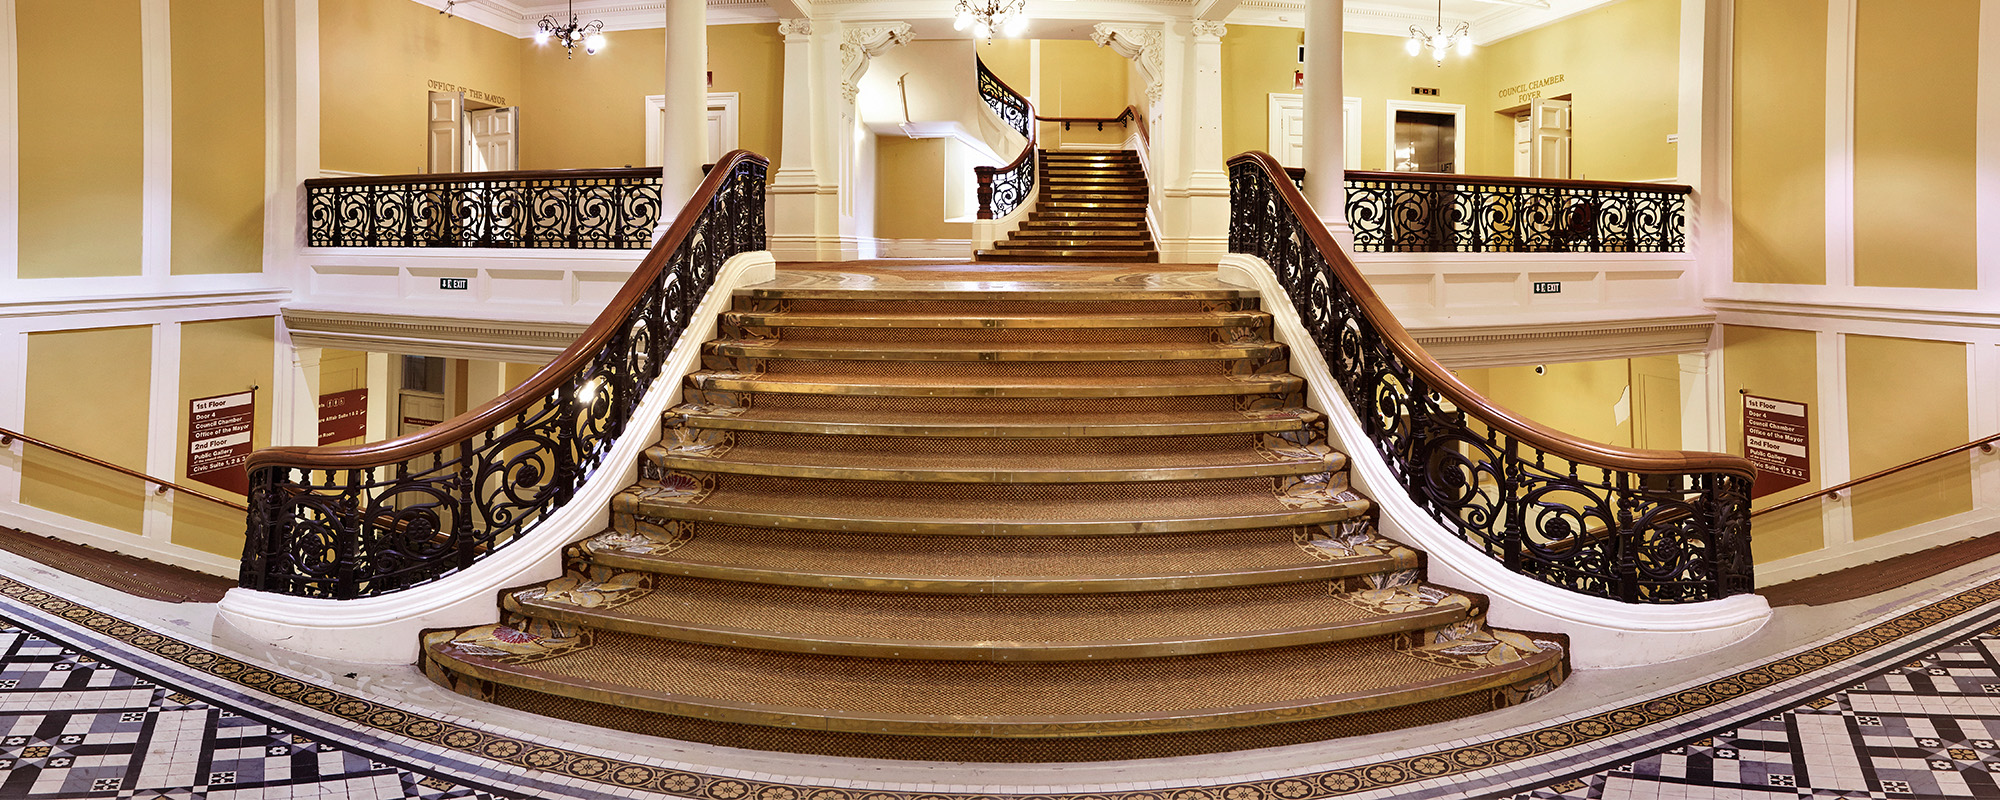 Town hall stairs